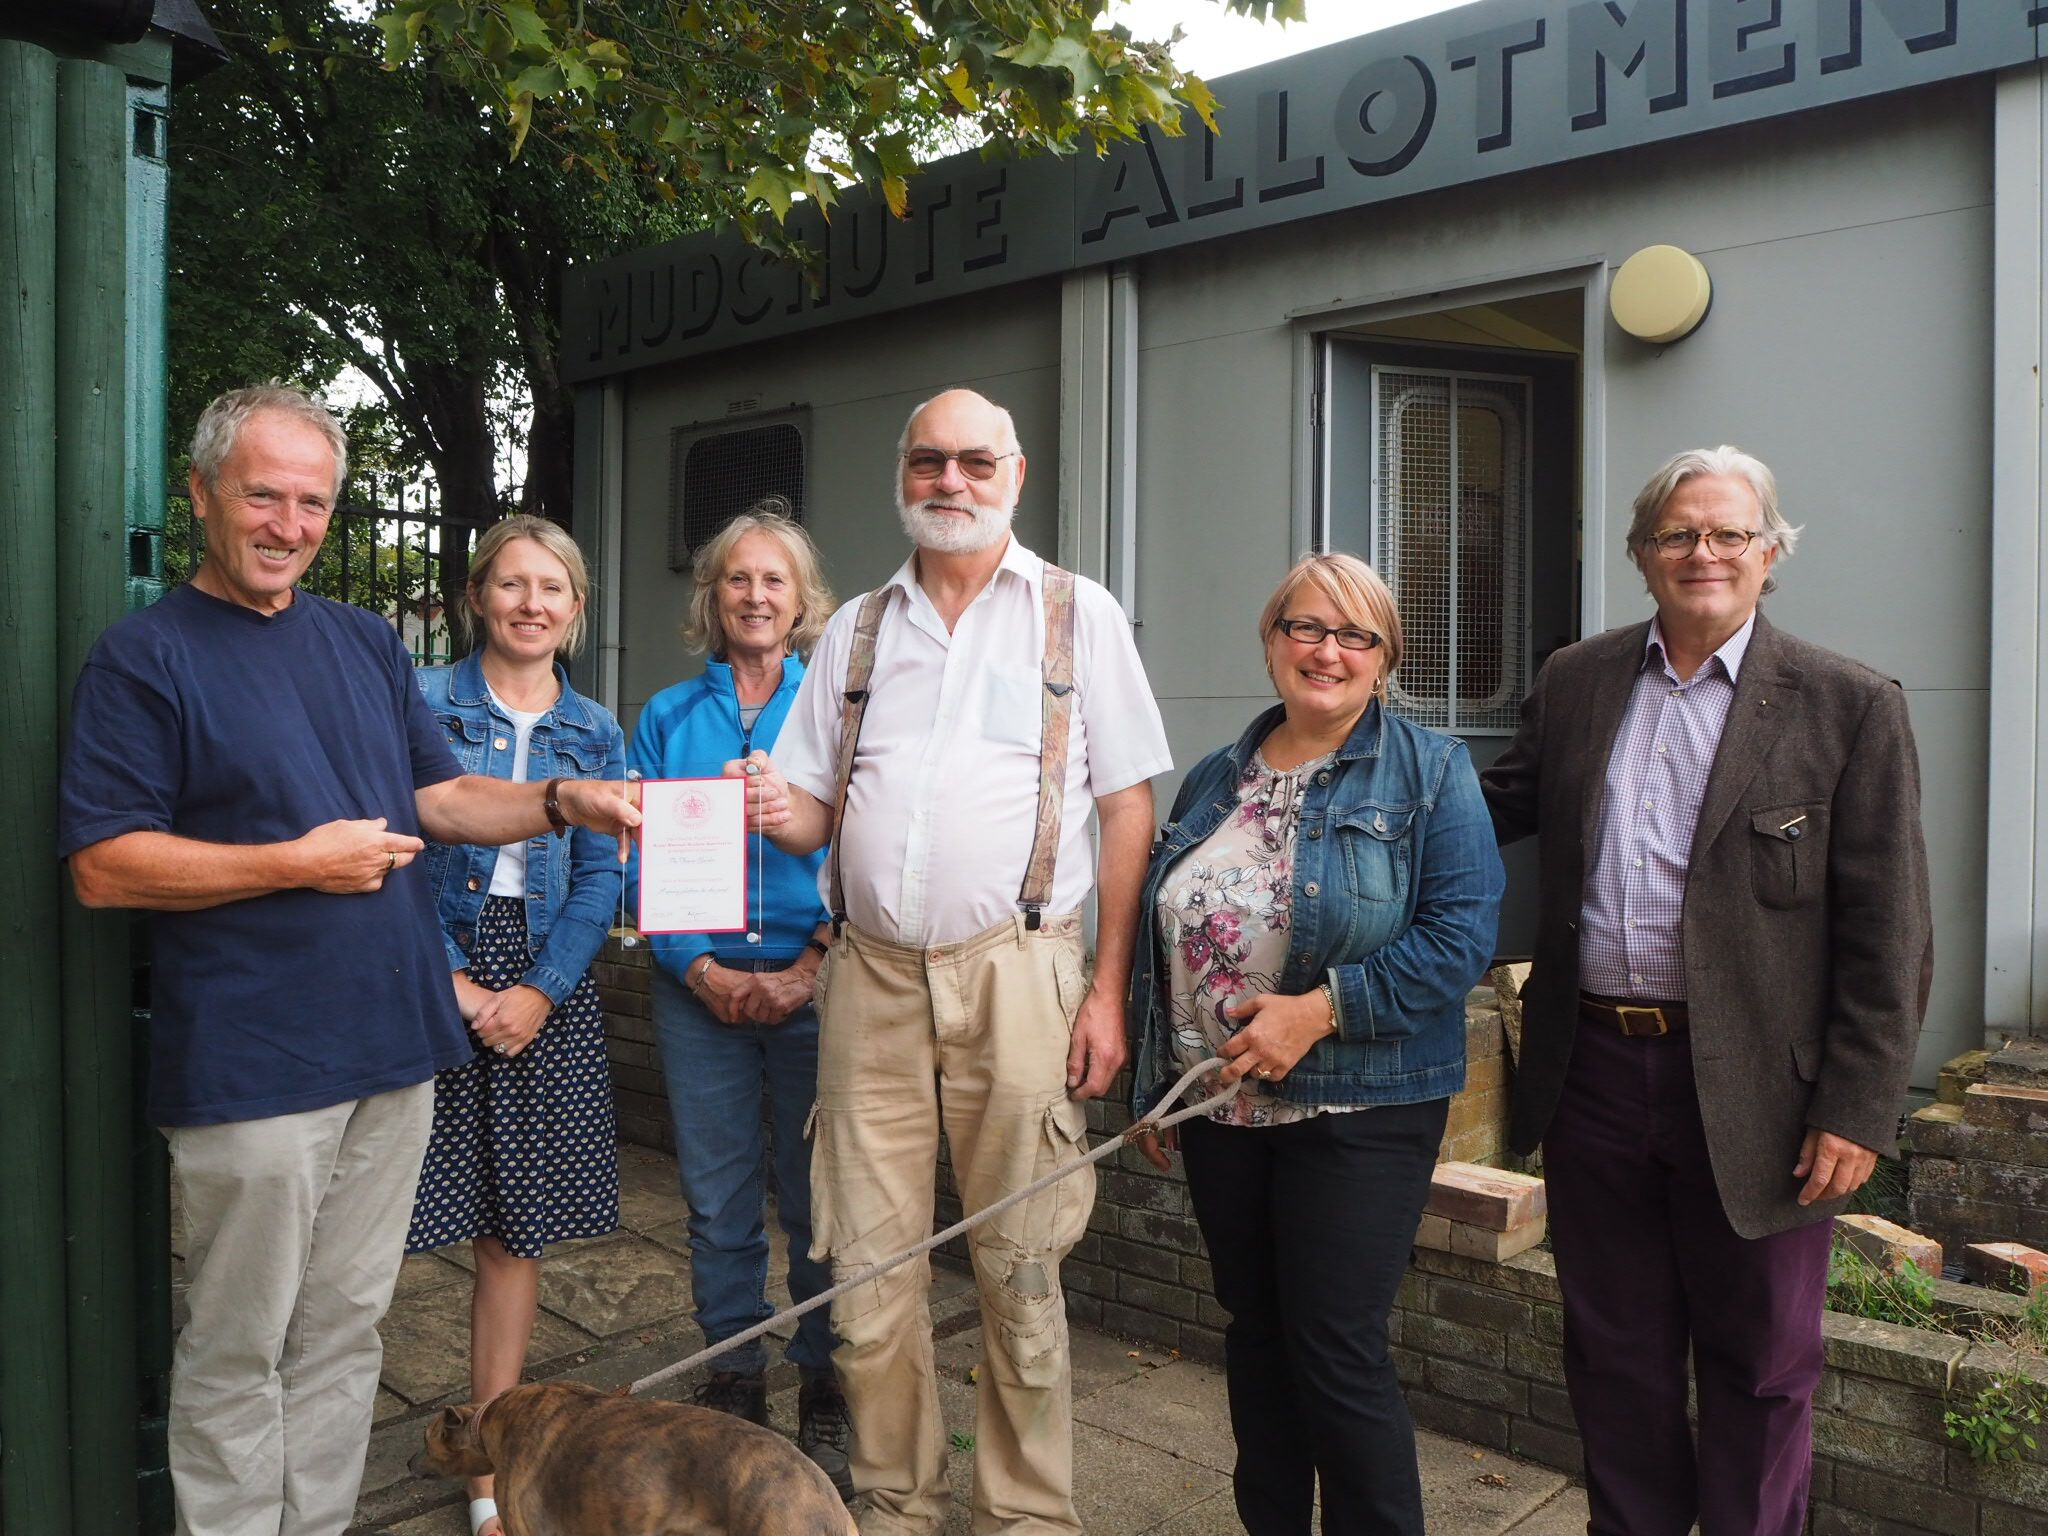 IOD Allotment Soc RWHA Charity Fund Visi